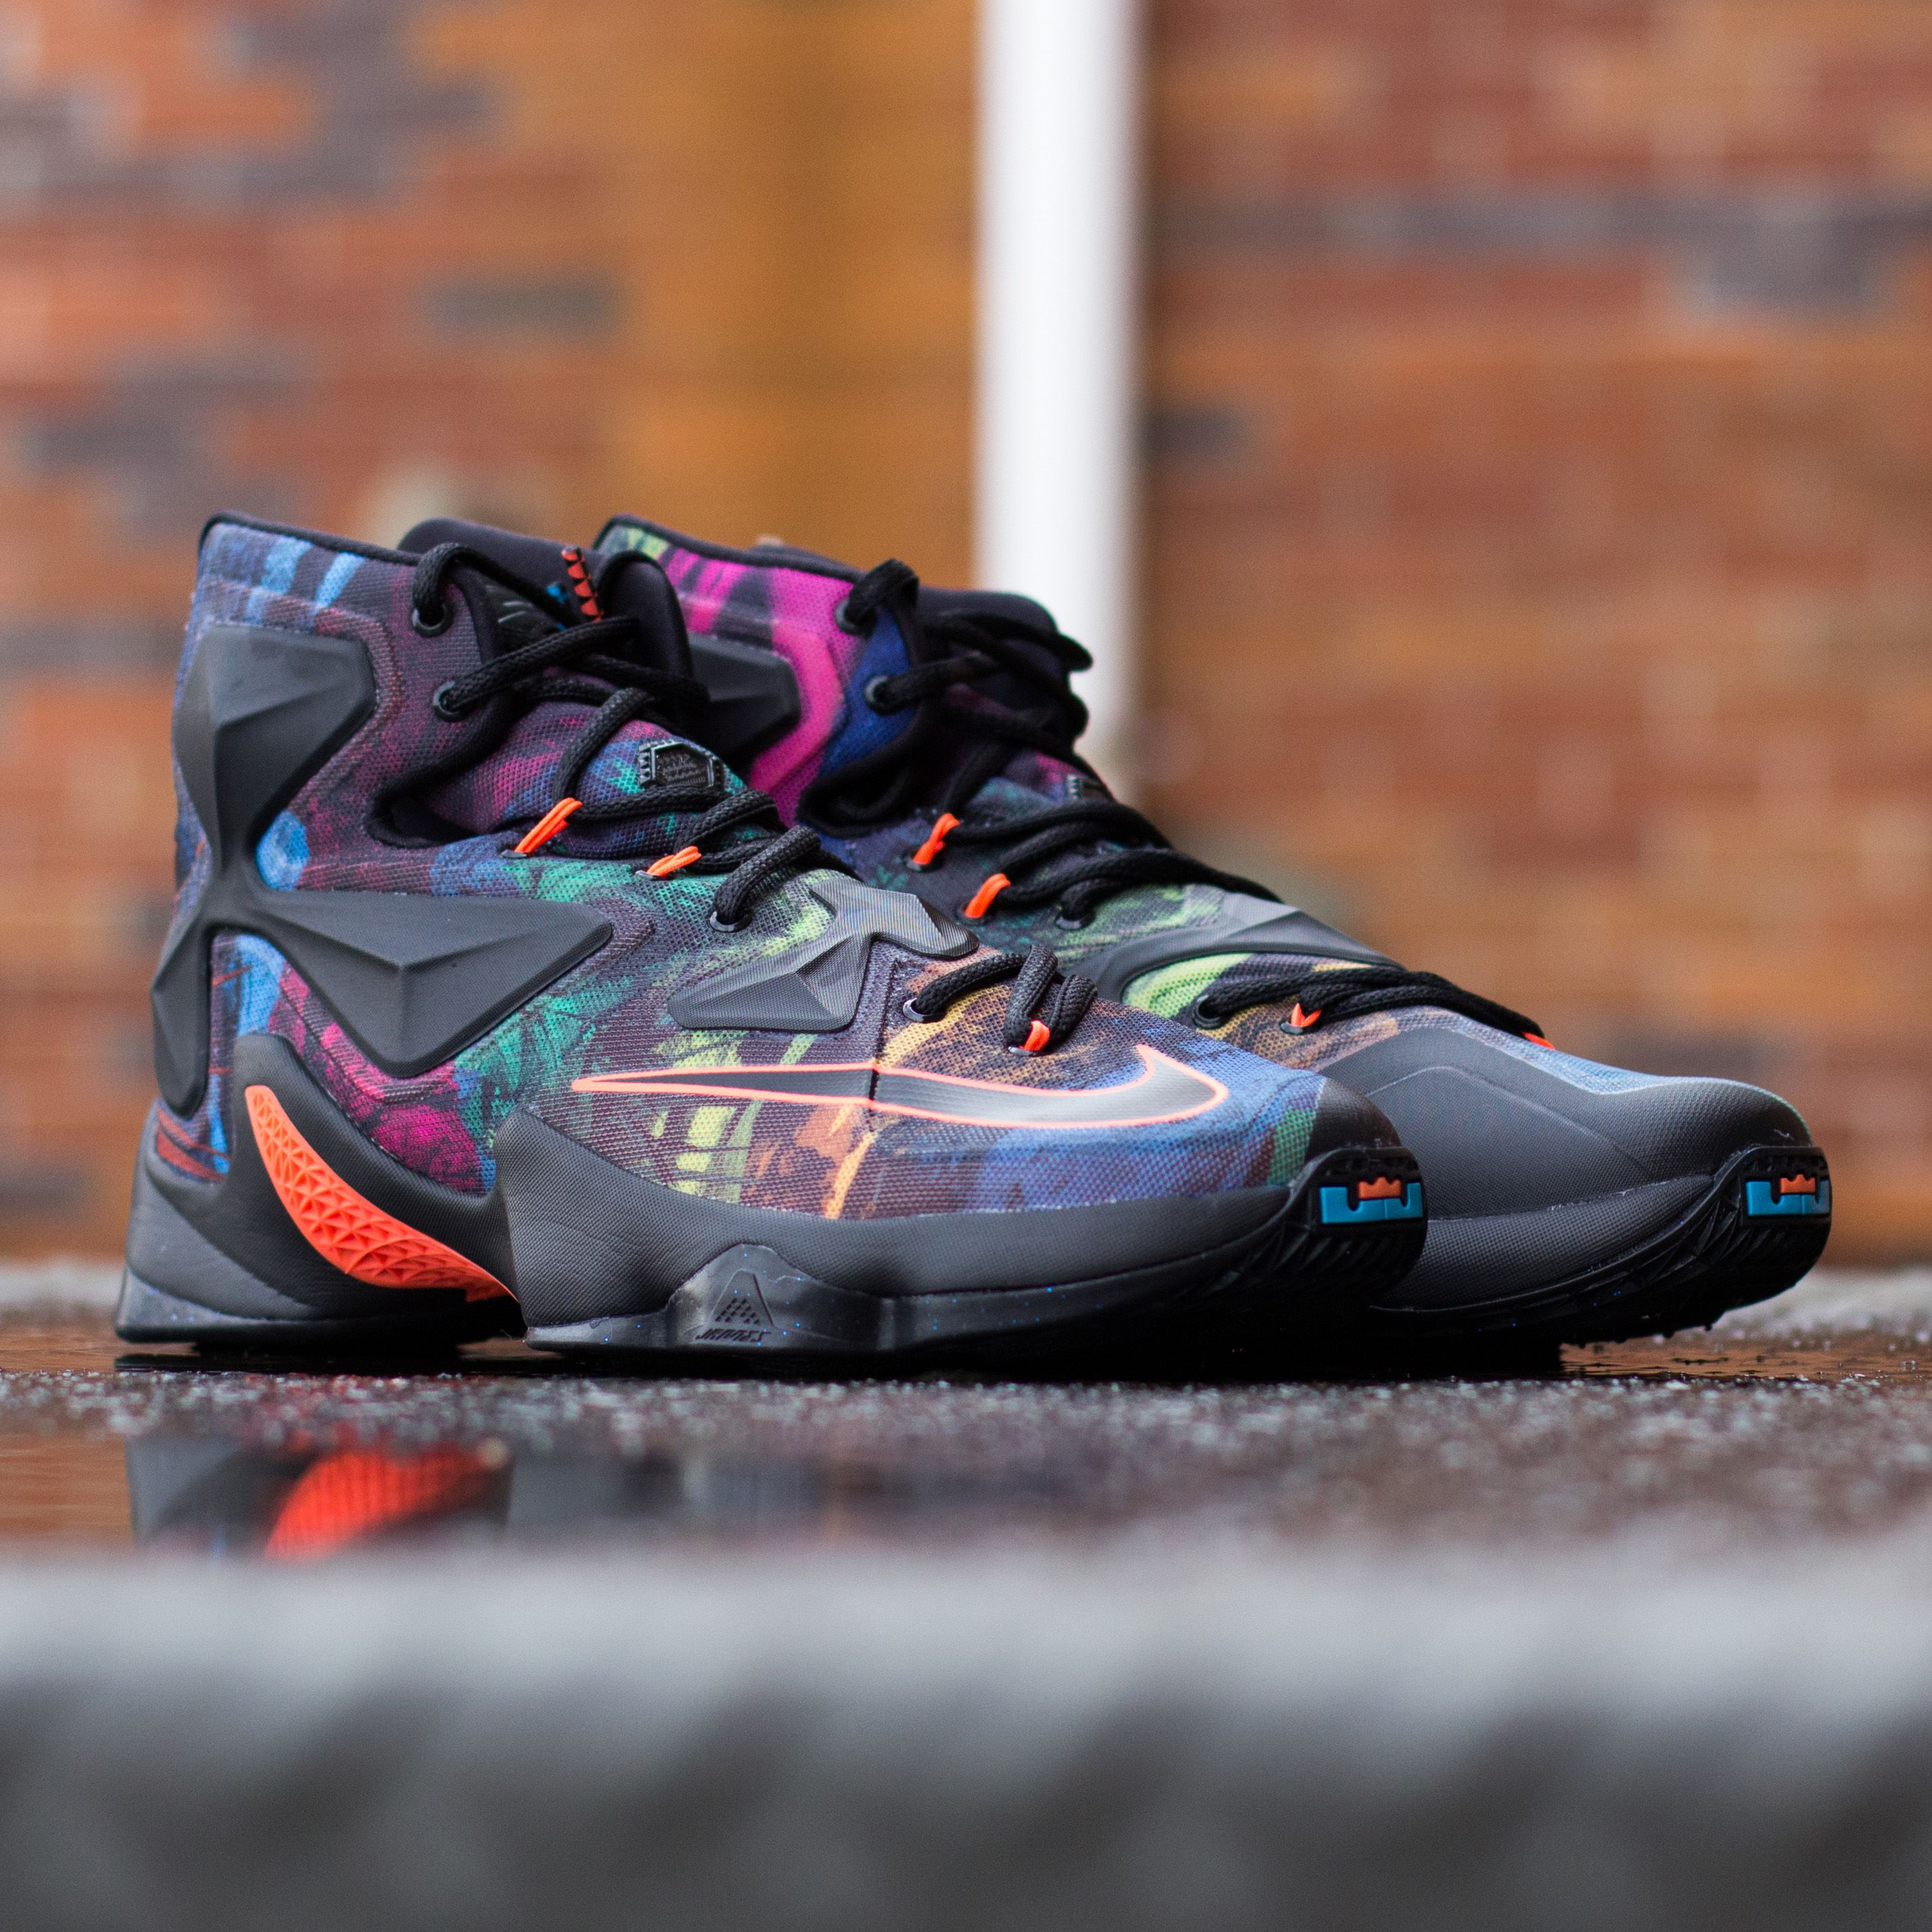 Play like a pro in the Nike LeBron 13